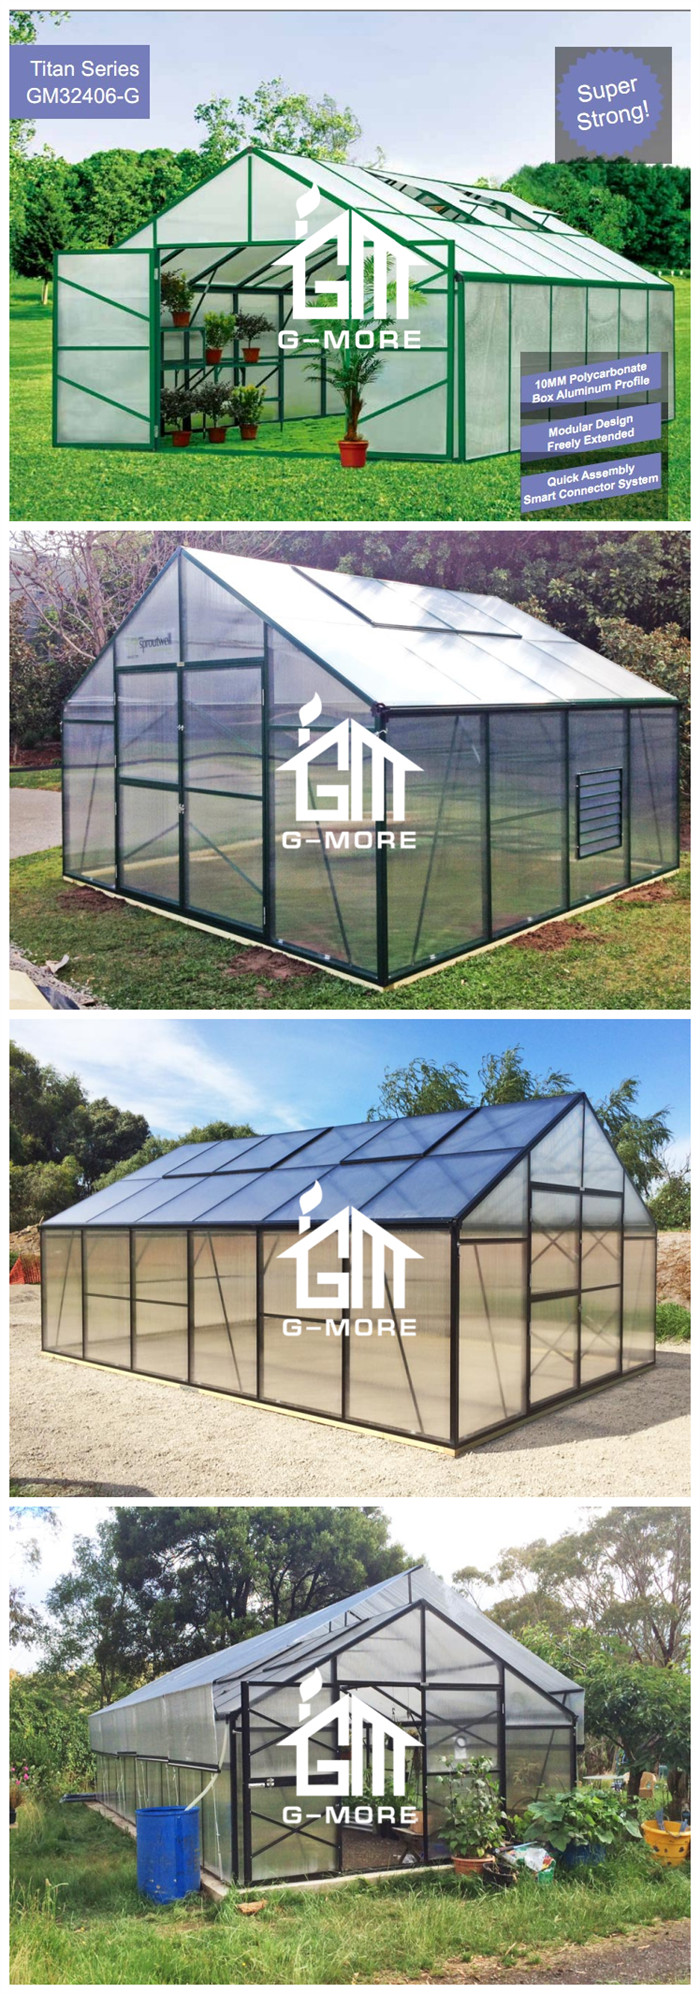 G-MORE Titan/Grange Series, 4M Width/8M Length, Premium Easy DIY Aluminium/10MM Polycarbonate Hobby Greenhouse(GM32408-B)